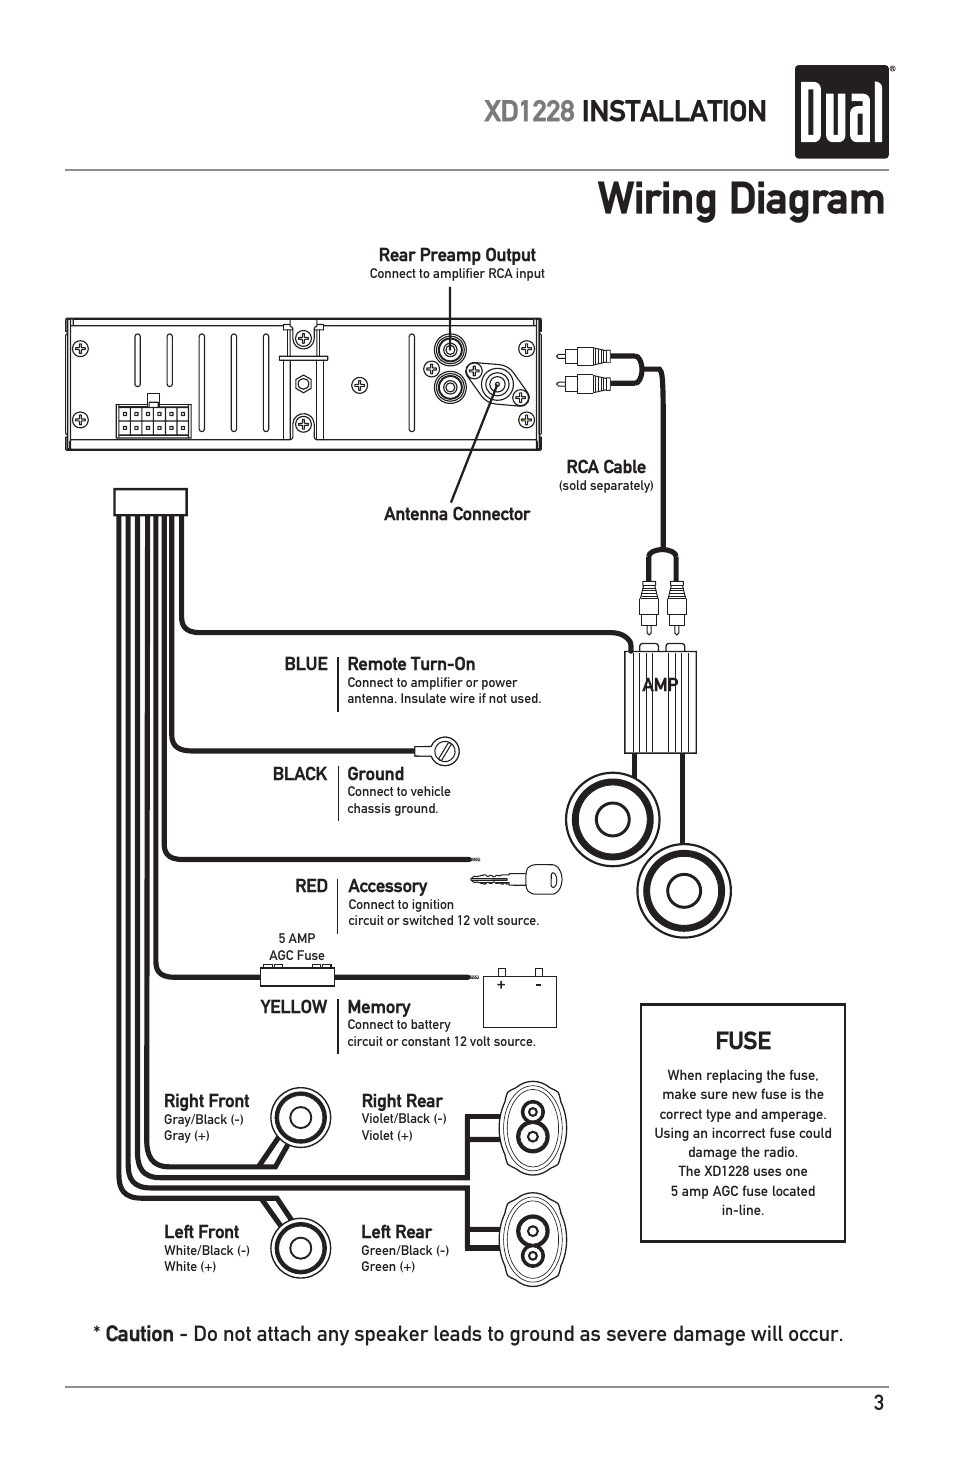 dual xd1228 page3 dual radio wiring diagram dual car radio wiring diagram \u2022 free  at bakdesigns.co